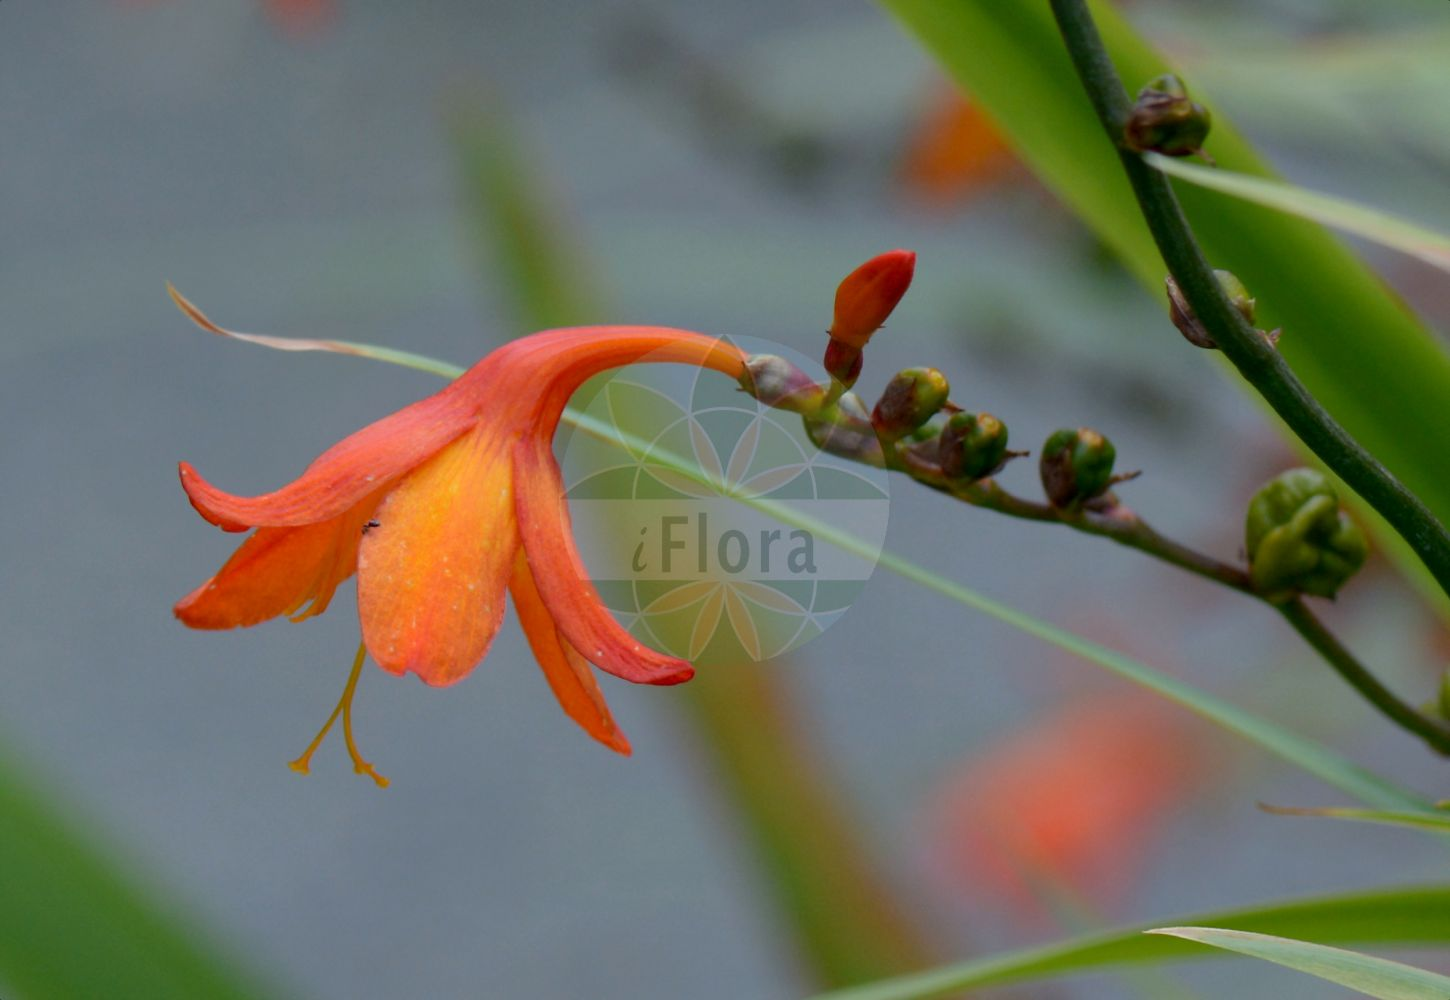 Foto von Crocosmia x crocosmiiflora. Das Bild zeigt Blatt und Bluete. Das Foto wurde in Lyon, Auvergne-Rhône-Alpes, Frankreich aufgenommen. ---- Photo of Crocosmia x crocosmiiflora.The image is showing leaf and flower.The picture was taken in Lyon, Auvergne-Rhône-Alpes, France. (Crocosmia x crocosmiiflora,Crocosmia,Iridaceae,Schwertliliengewaechse,Iris family,Blatt,Bluete,leaf,flower)